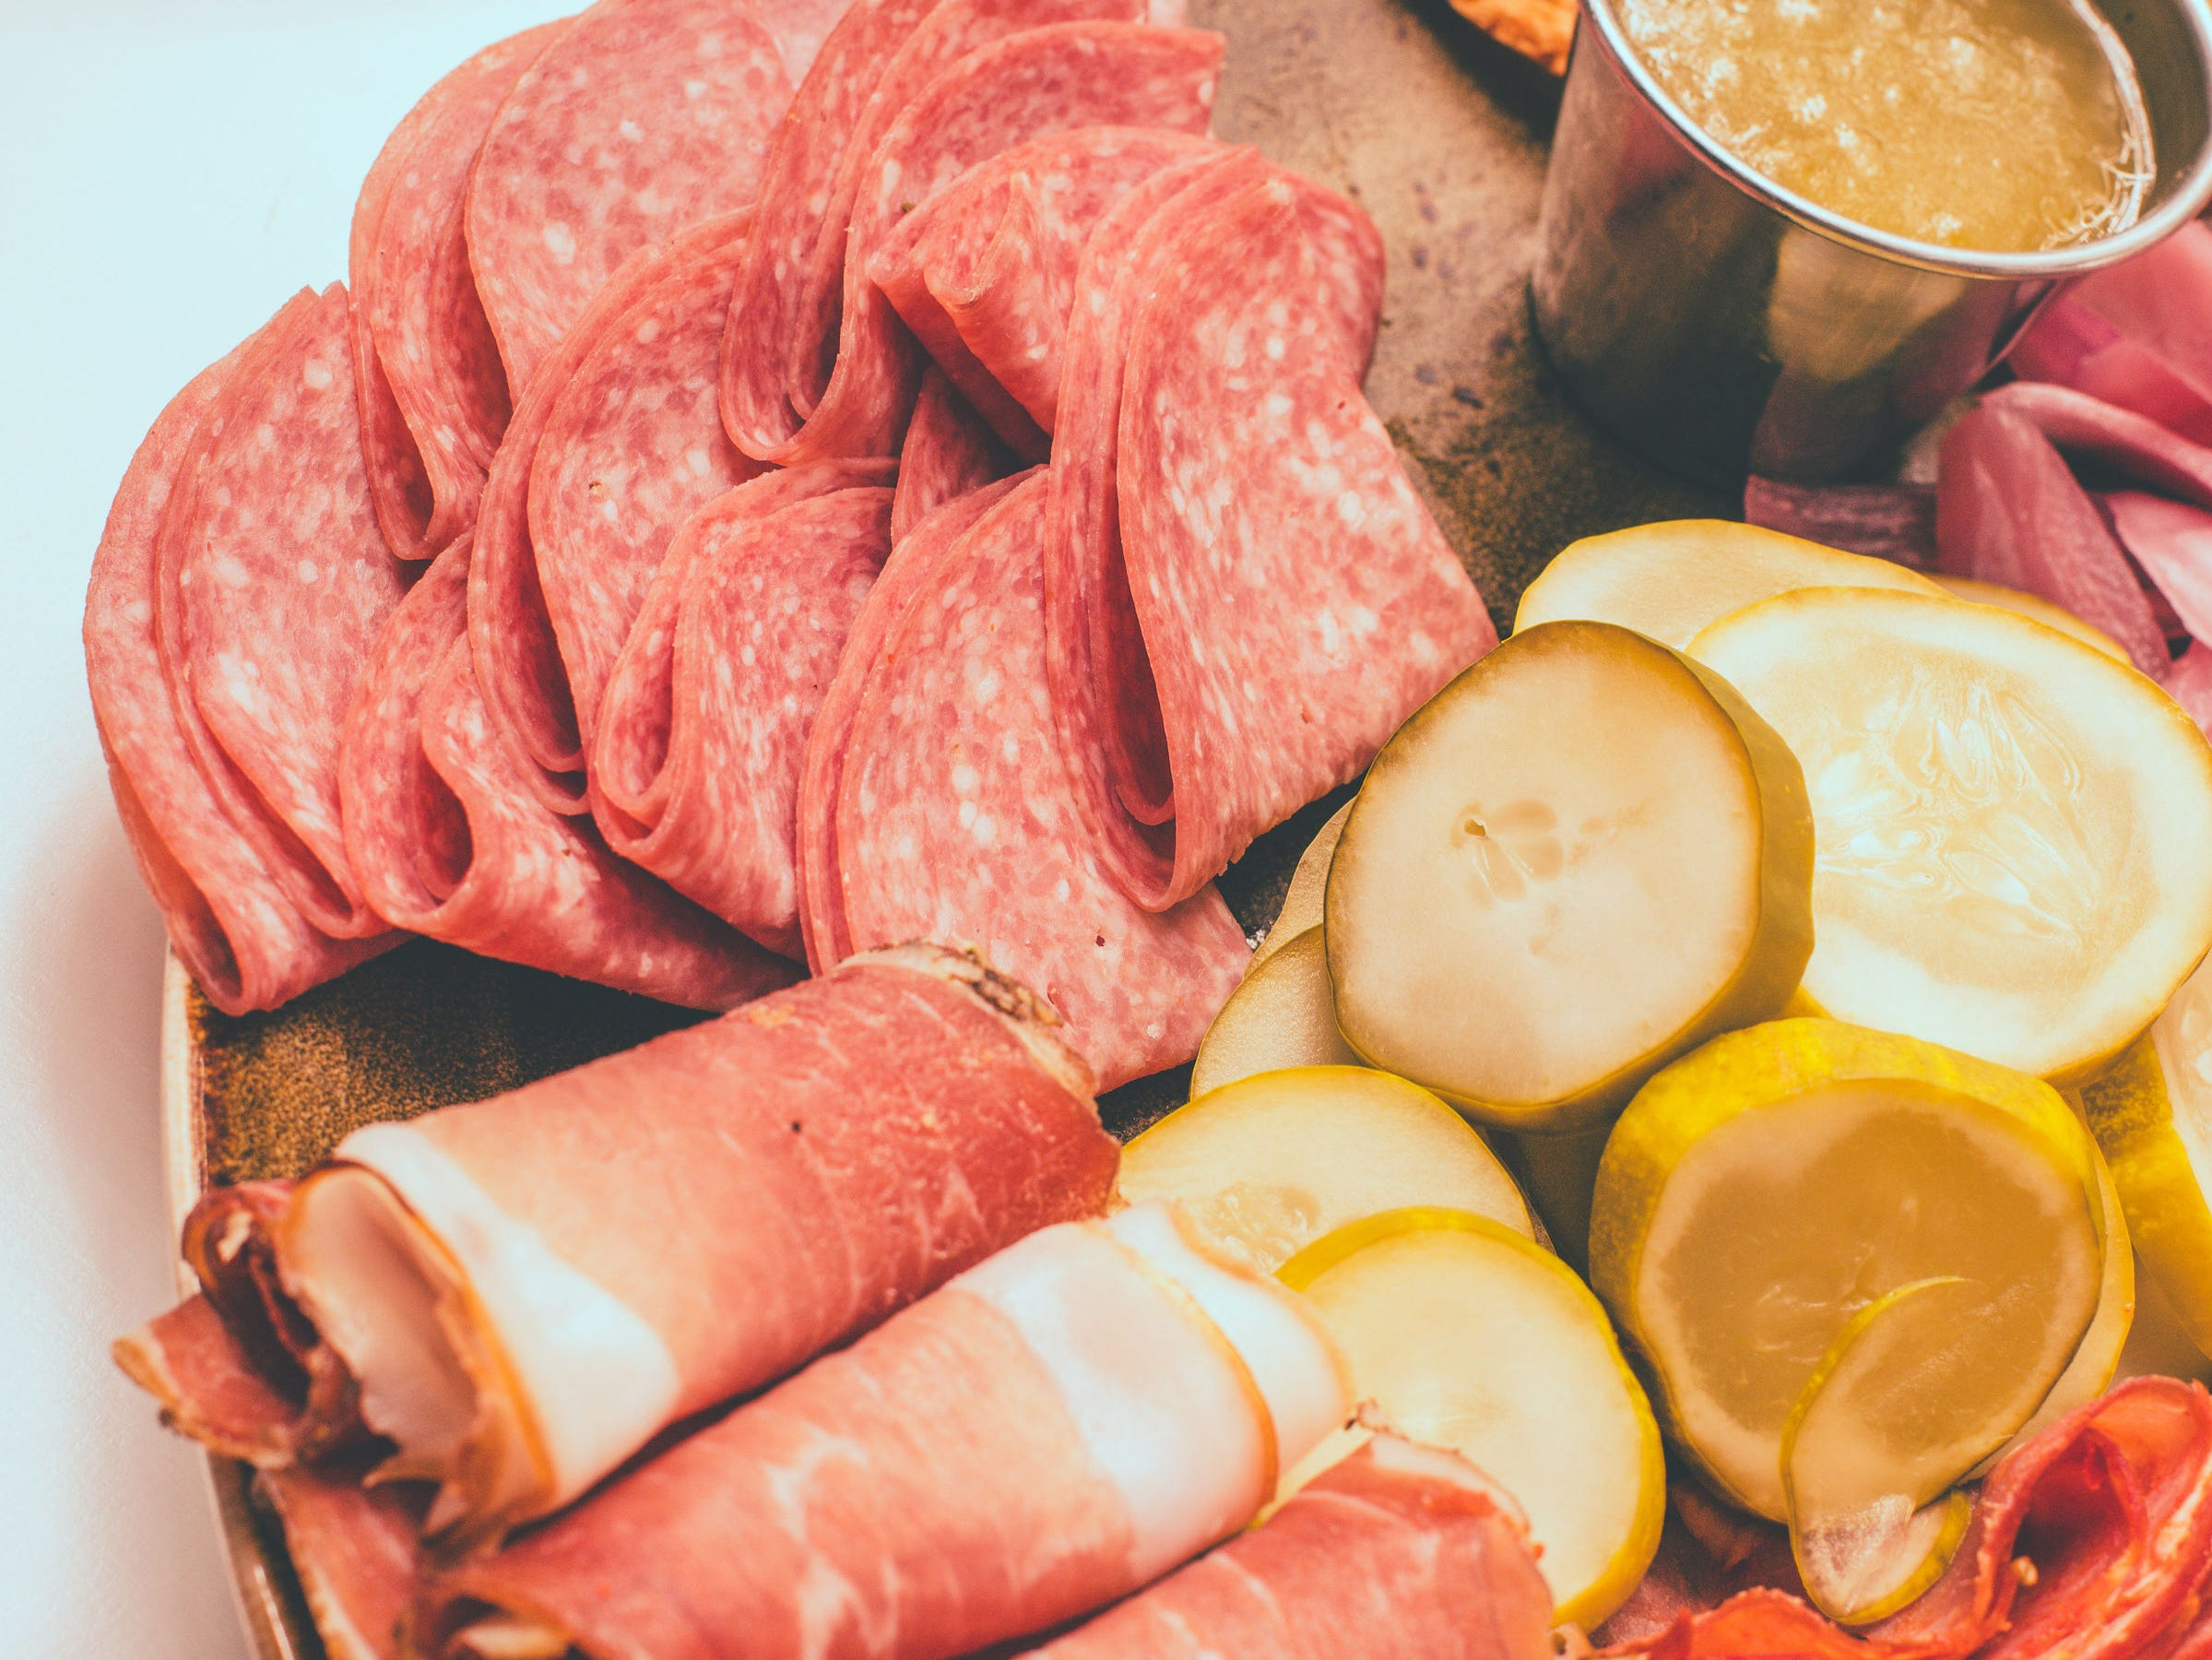 The Meat Platter, with proscuitto, capicola, salami, pickles, apple jalapeno jam and more, is one of six food packages available in Cafe Benelux's Lux Domes.